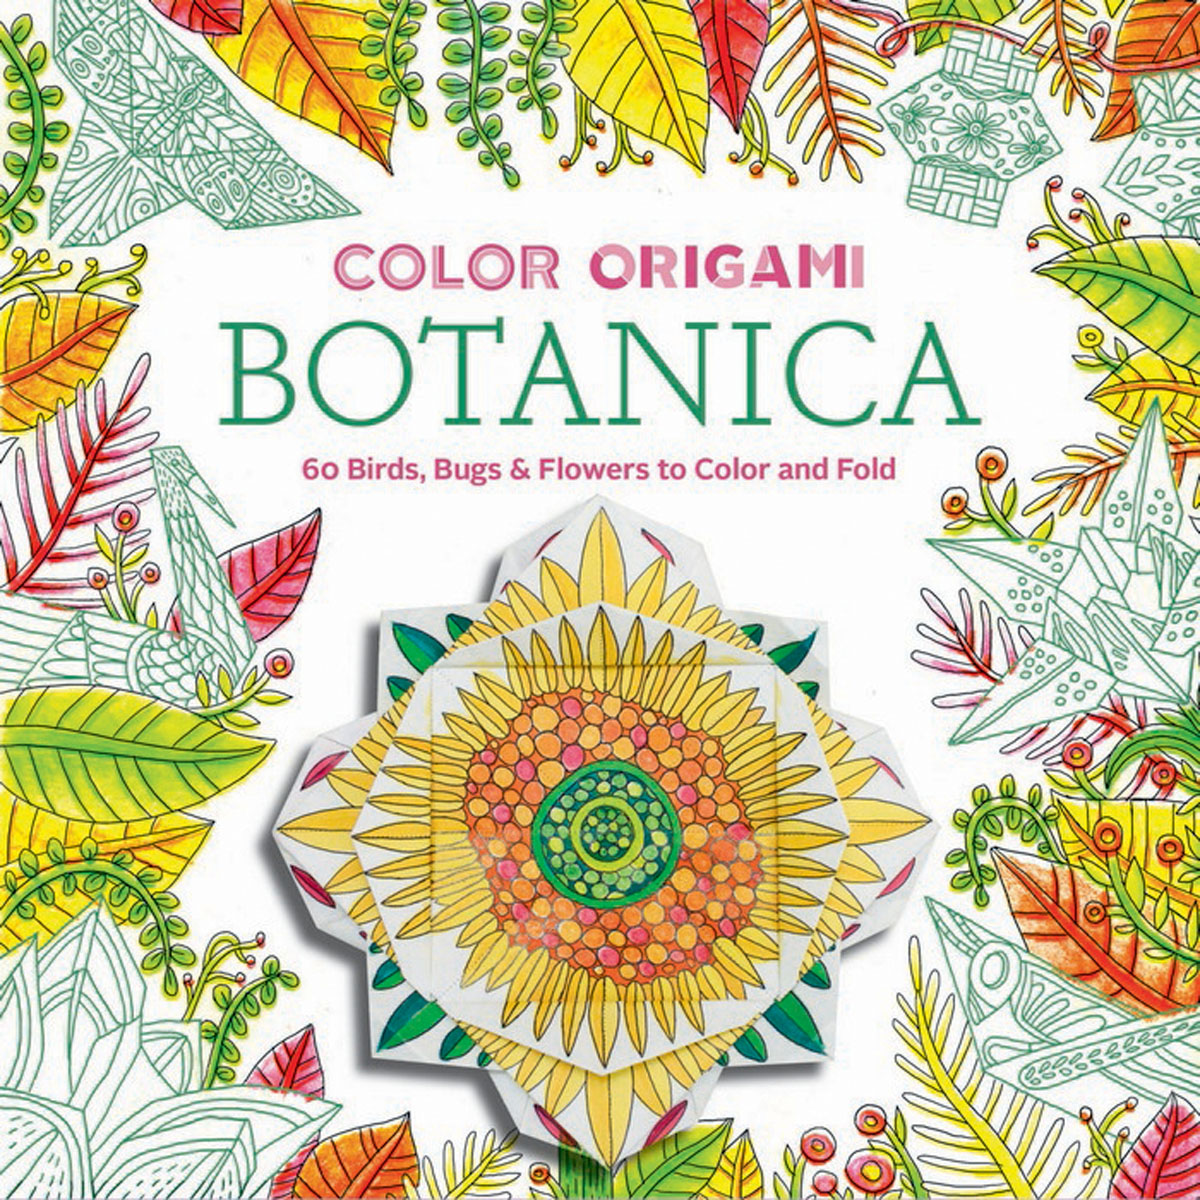 Color Origami: Botanica (Adult Coloring Book) bella italia a coloring book tour of the world capital of romance